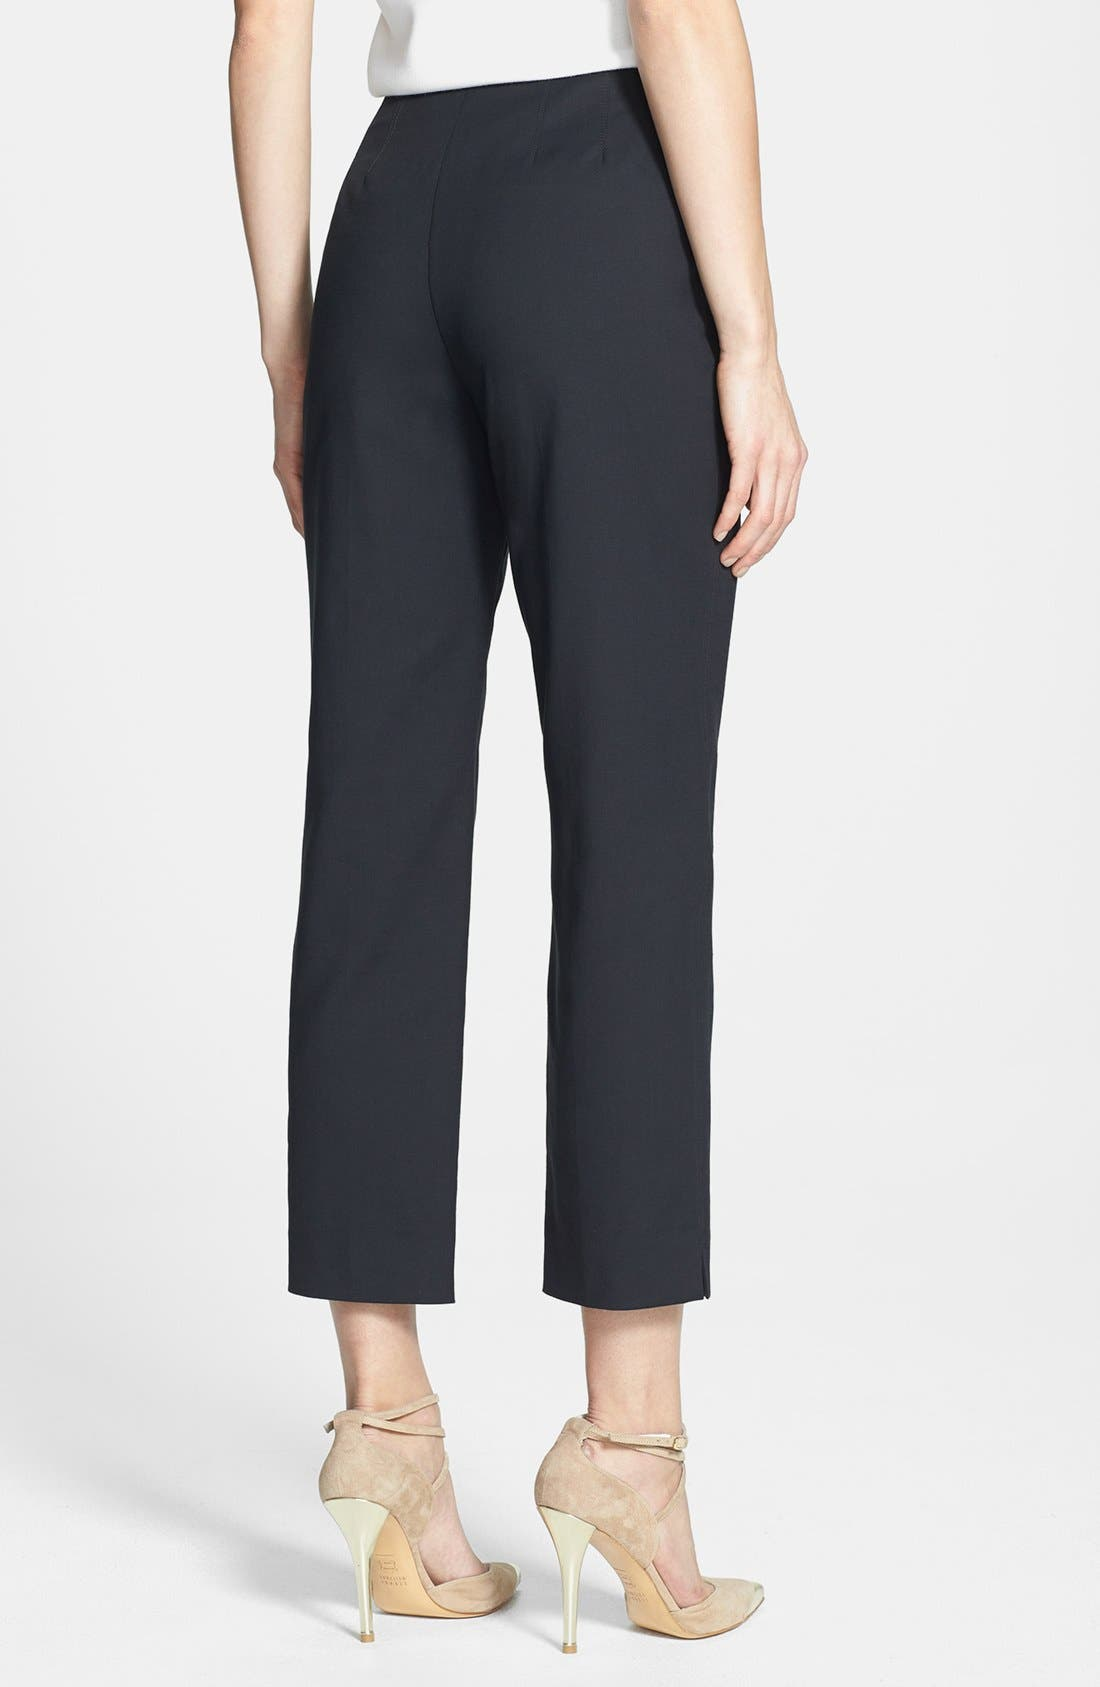 Alternate Image 2  - St. John Yellow Label 'Audrey' Double Weave Stretch Cotton Capri Pants